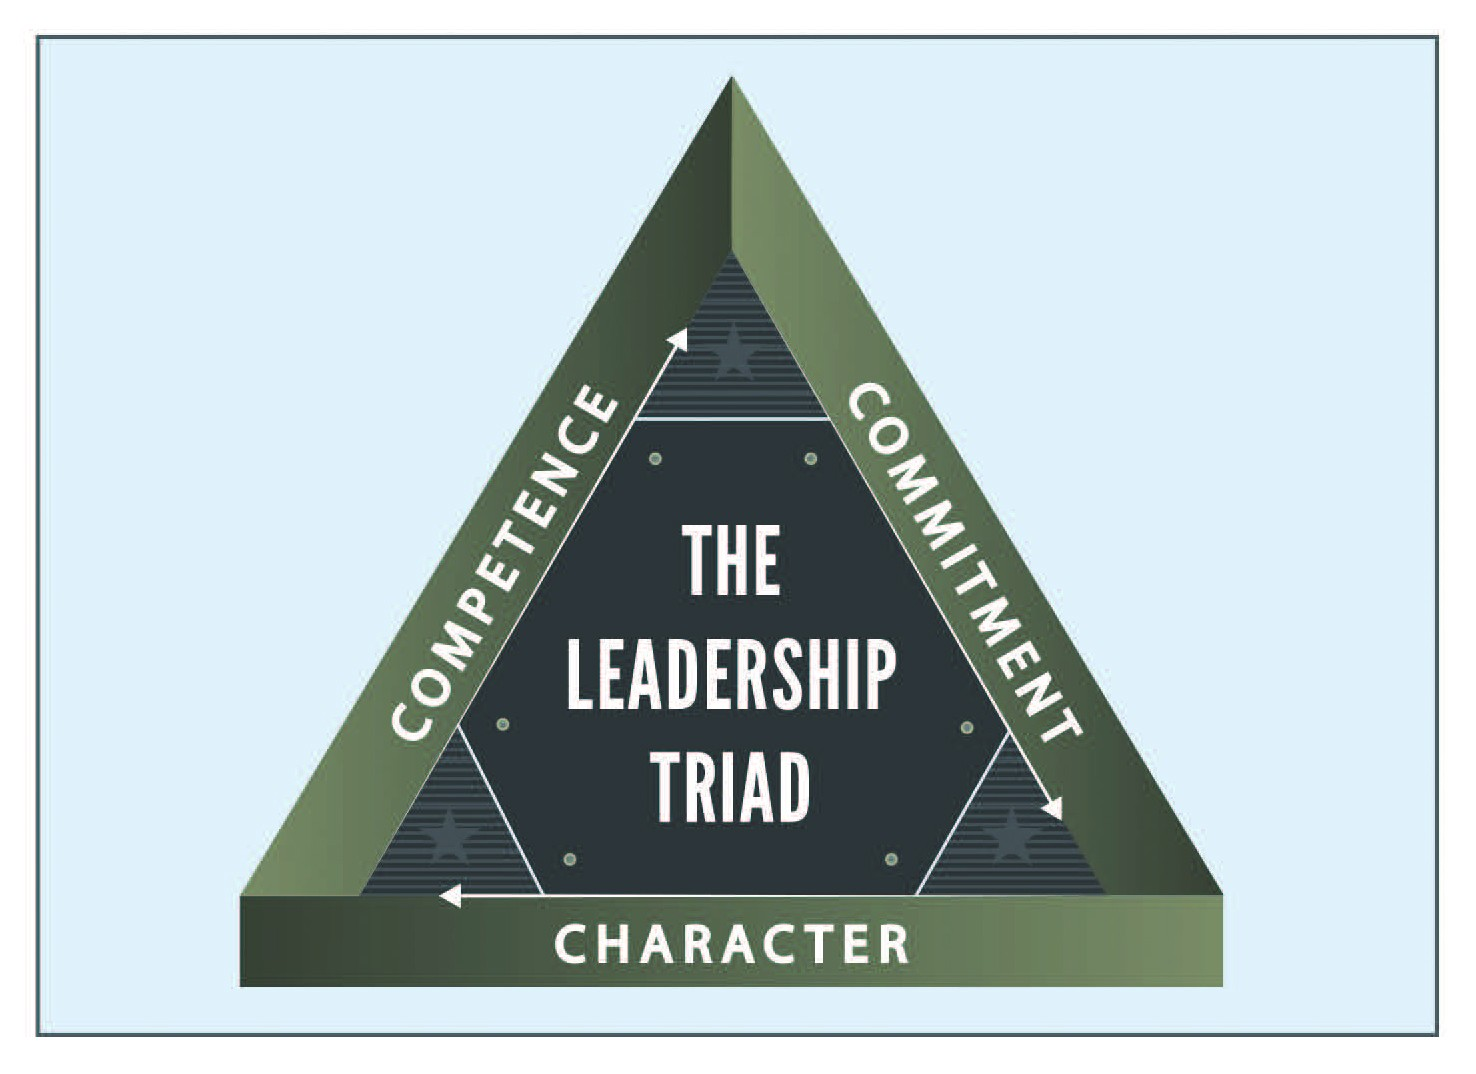 leadership article The best articles on leadership development and leadership skills,  recommended by global leadership trainer, author and coach steven howard.